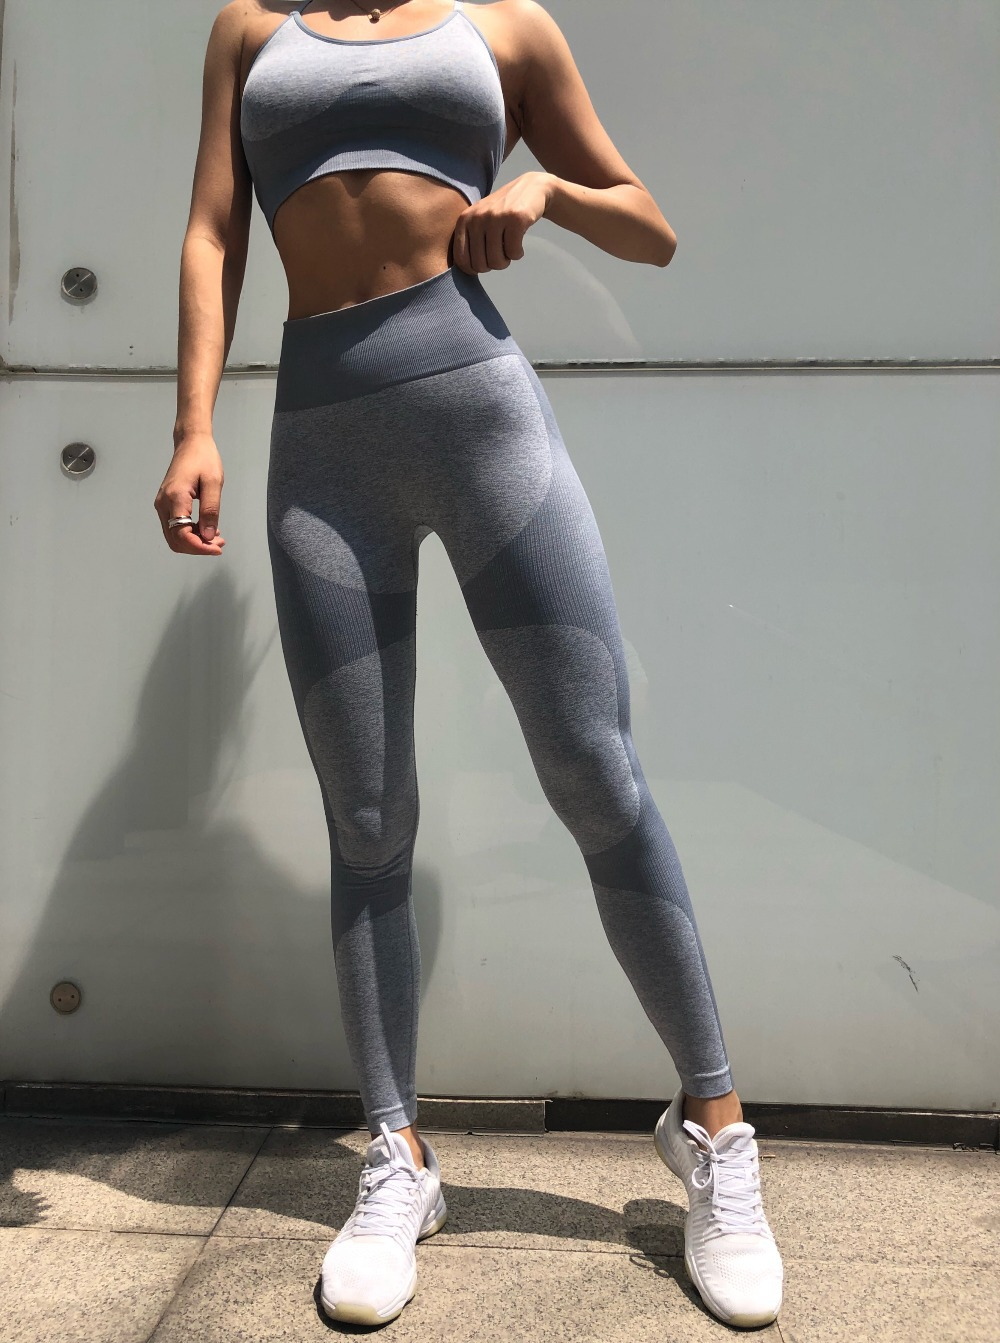 Camouflage Camo Set Wear For Women Gym Fitness Clothing Booty  Leggings Sport Bra Suit 11